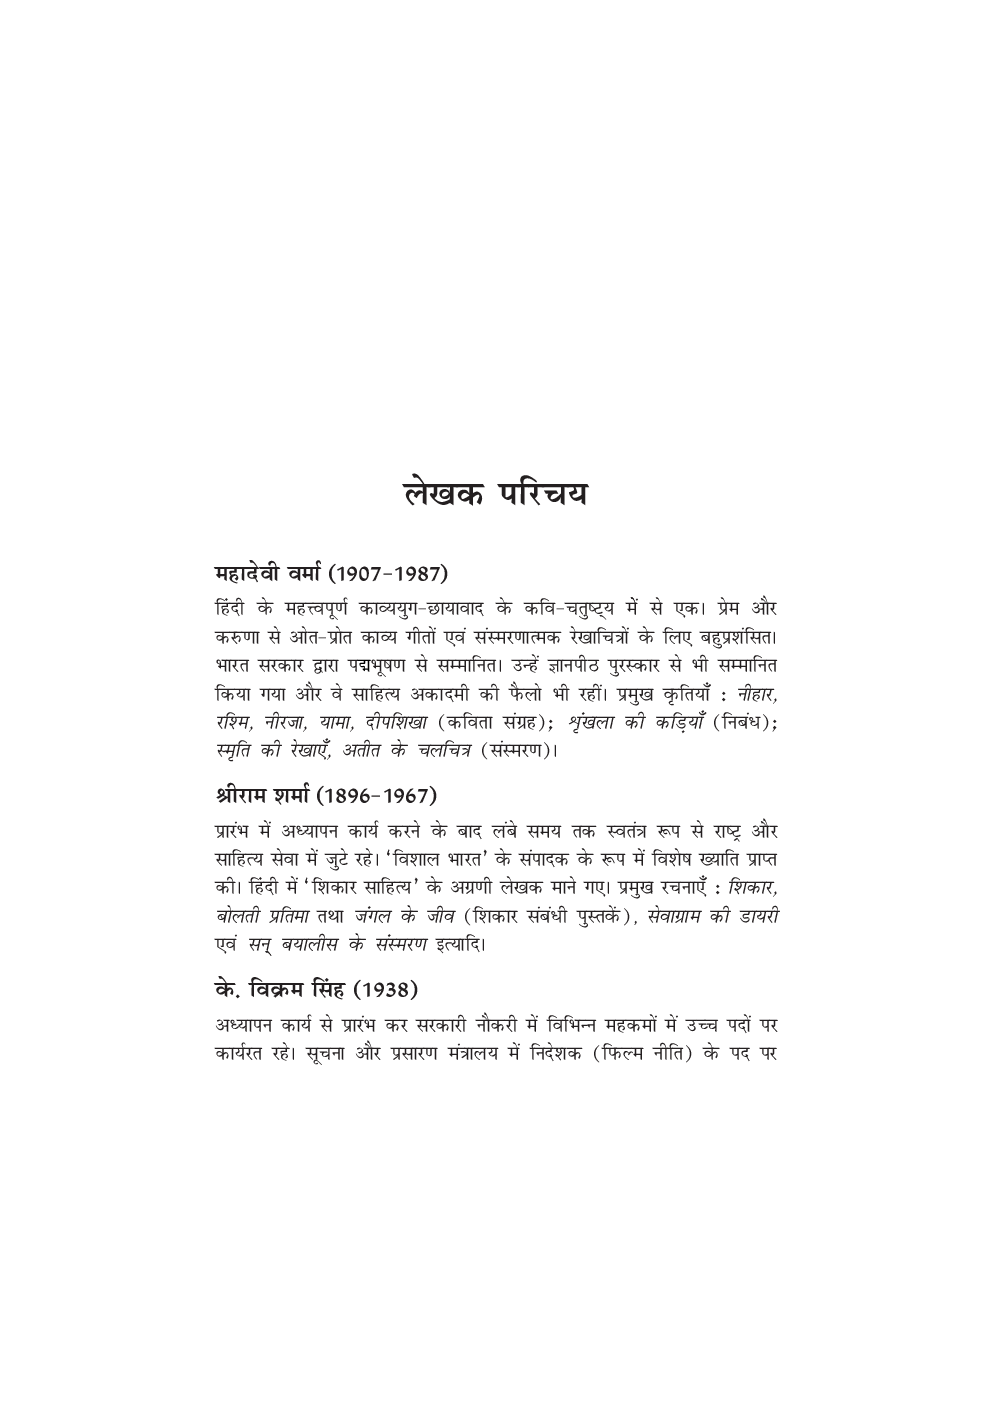 NCERT Hindi Sanchyan Textbook for Class 9th - Page 3